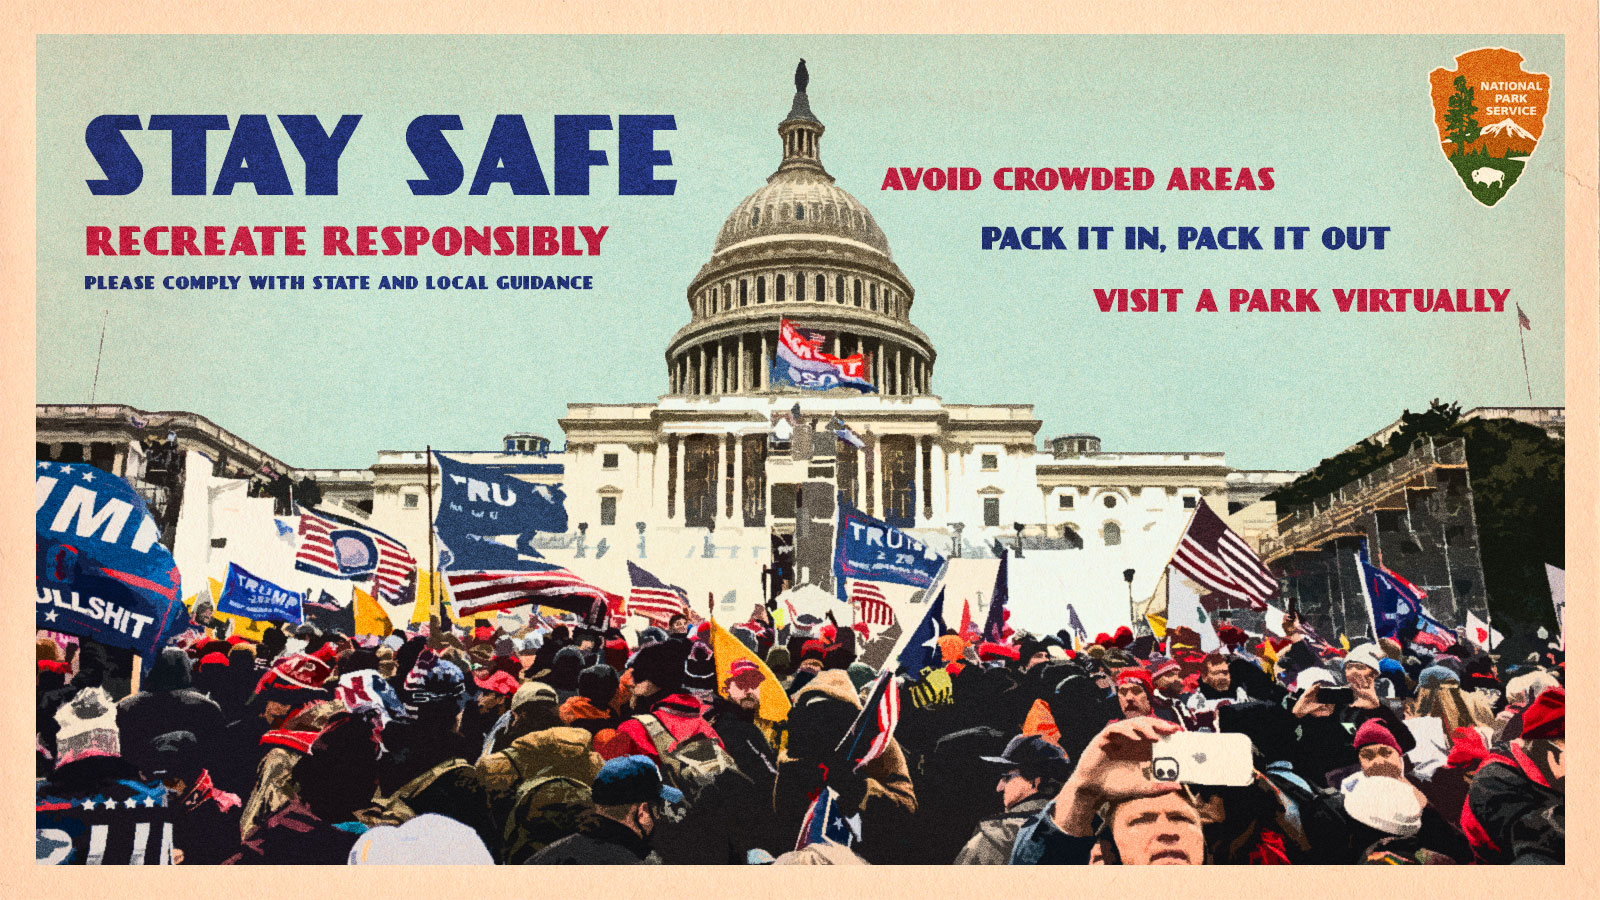 A picture of the mob of right-wing terrorists at the capitol in Washington DC photoshopped to look like a vintage National Park Service postcard with the words